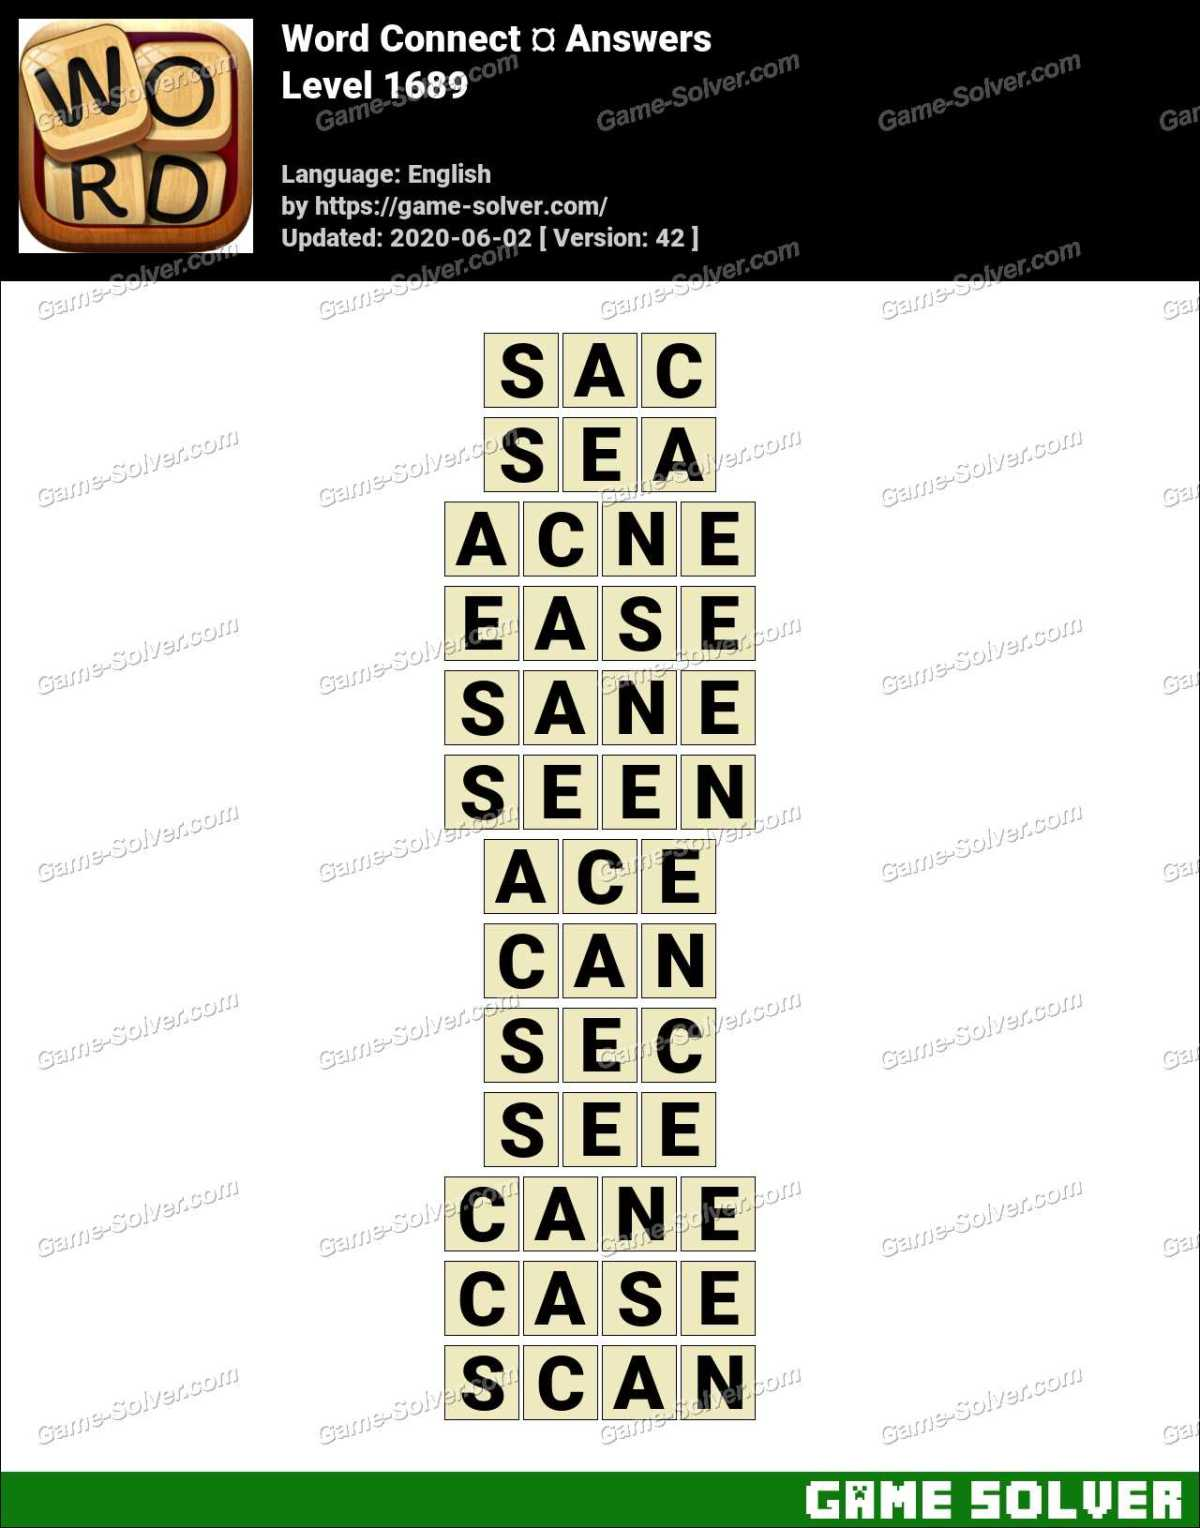 Word Connect Level 1689 Answers